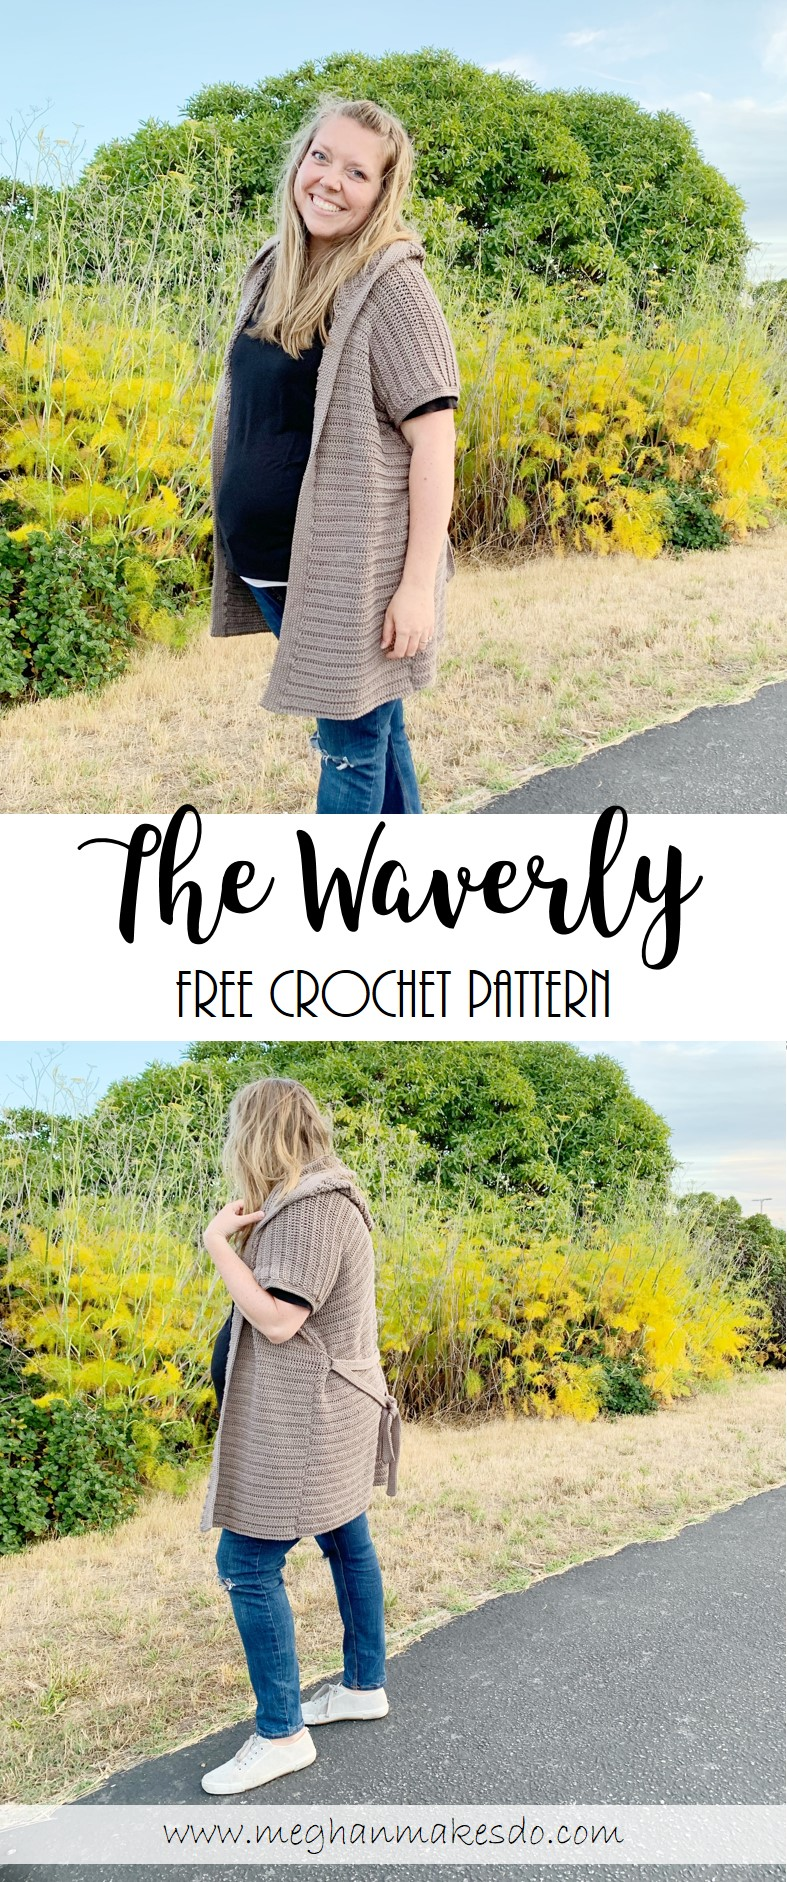 The Waverly Hooded Cardigan Free Crochet Pattern Meghan Makes Do